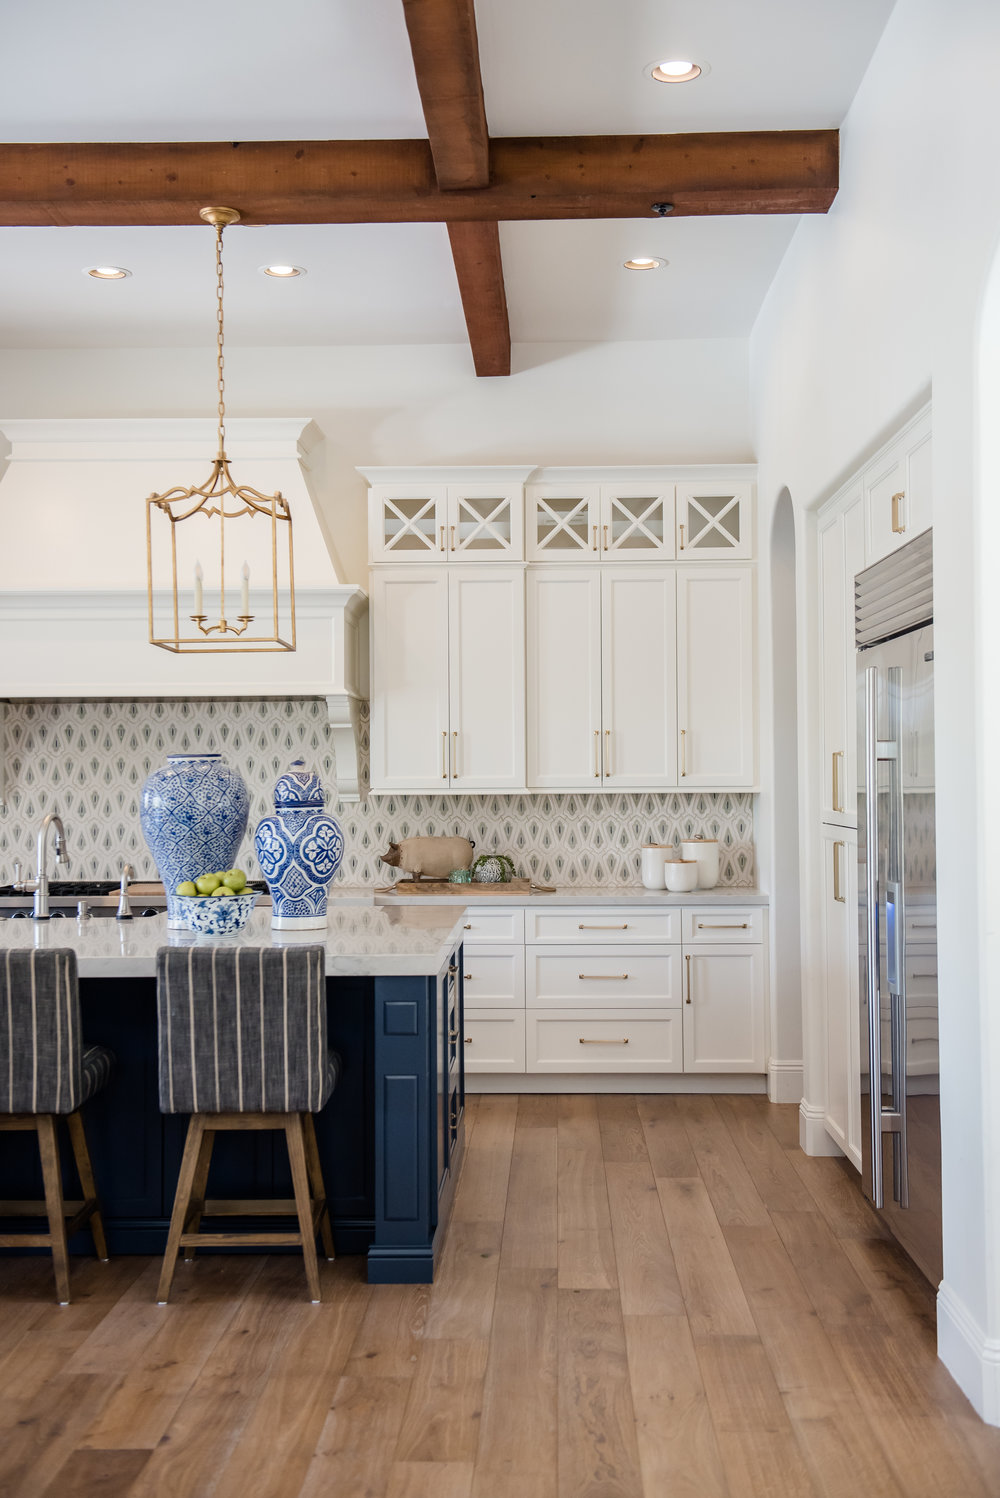 23a+kitchen+hood+pots+stripedstools+navyblueisland+backsplashtile+openshelves+pendants+brasslighting.jpg